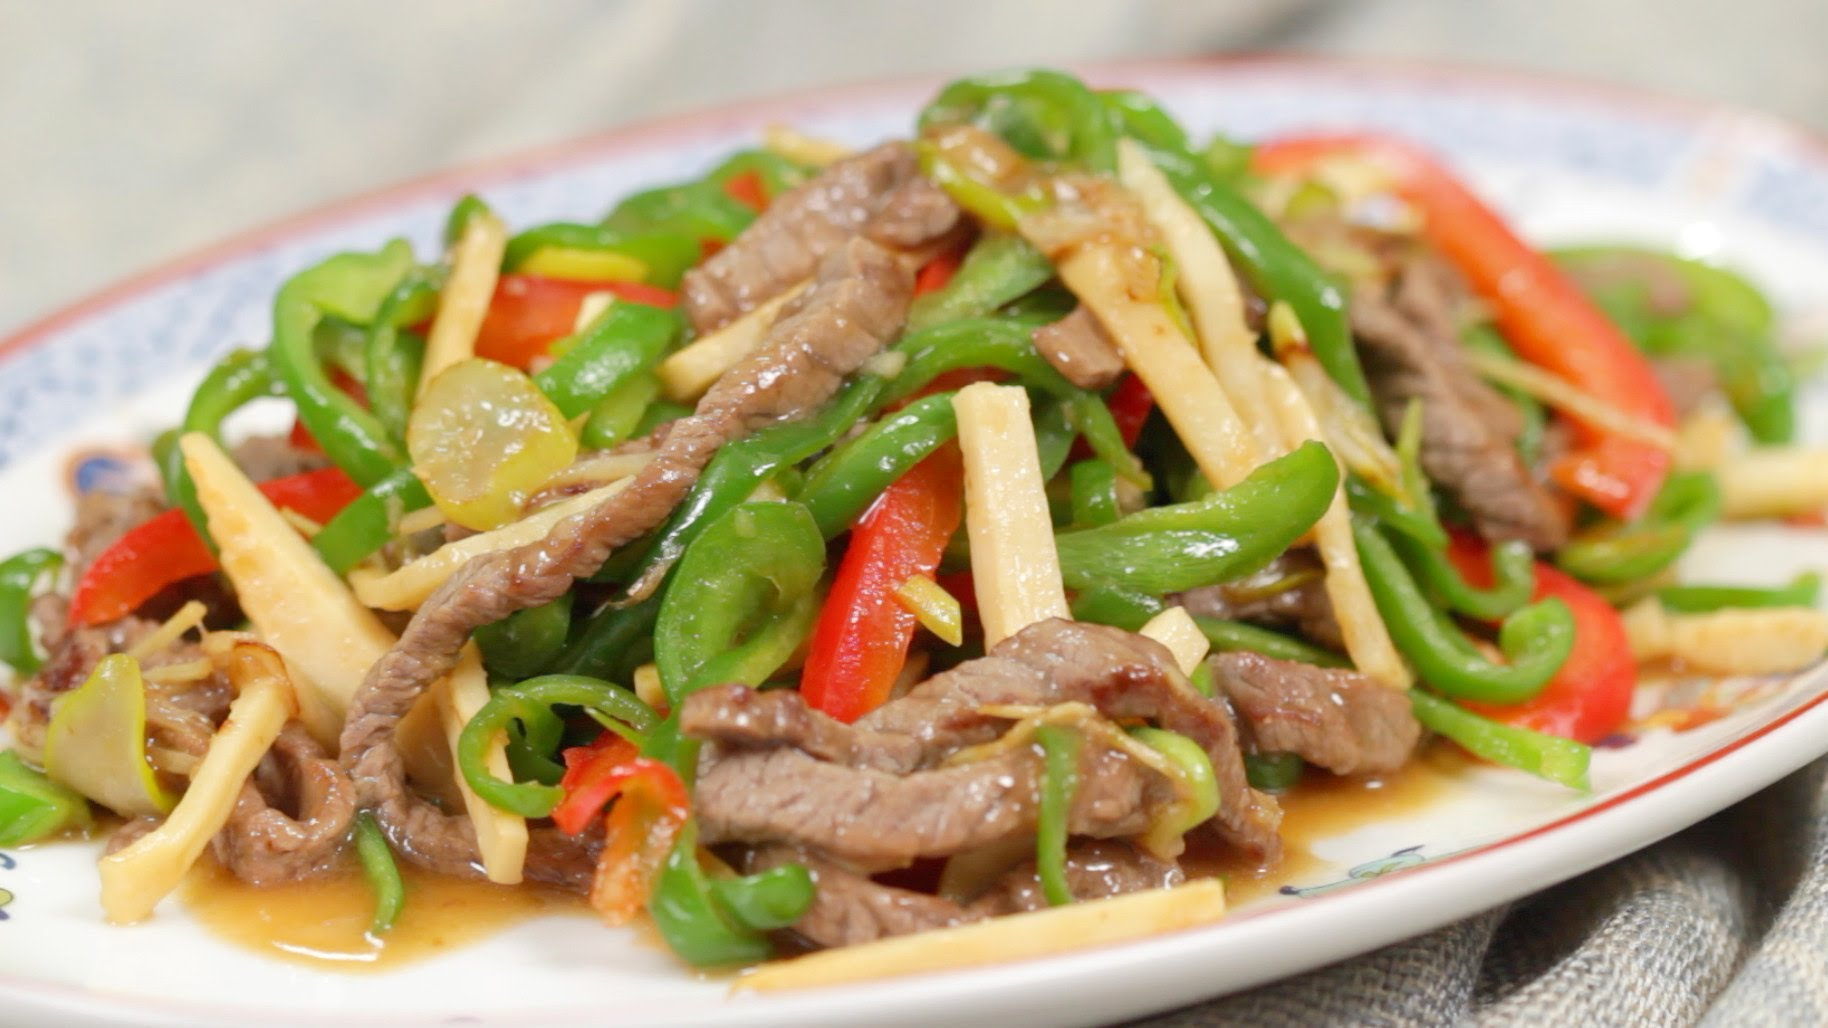 How to Make Pepper Steak